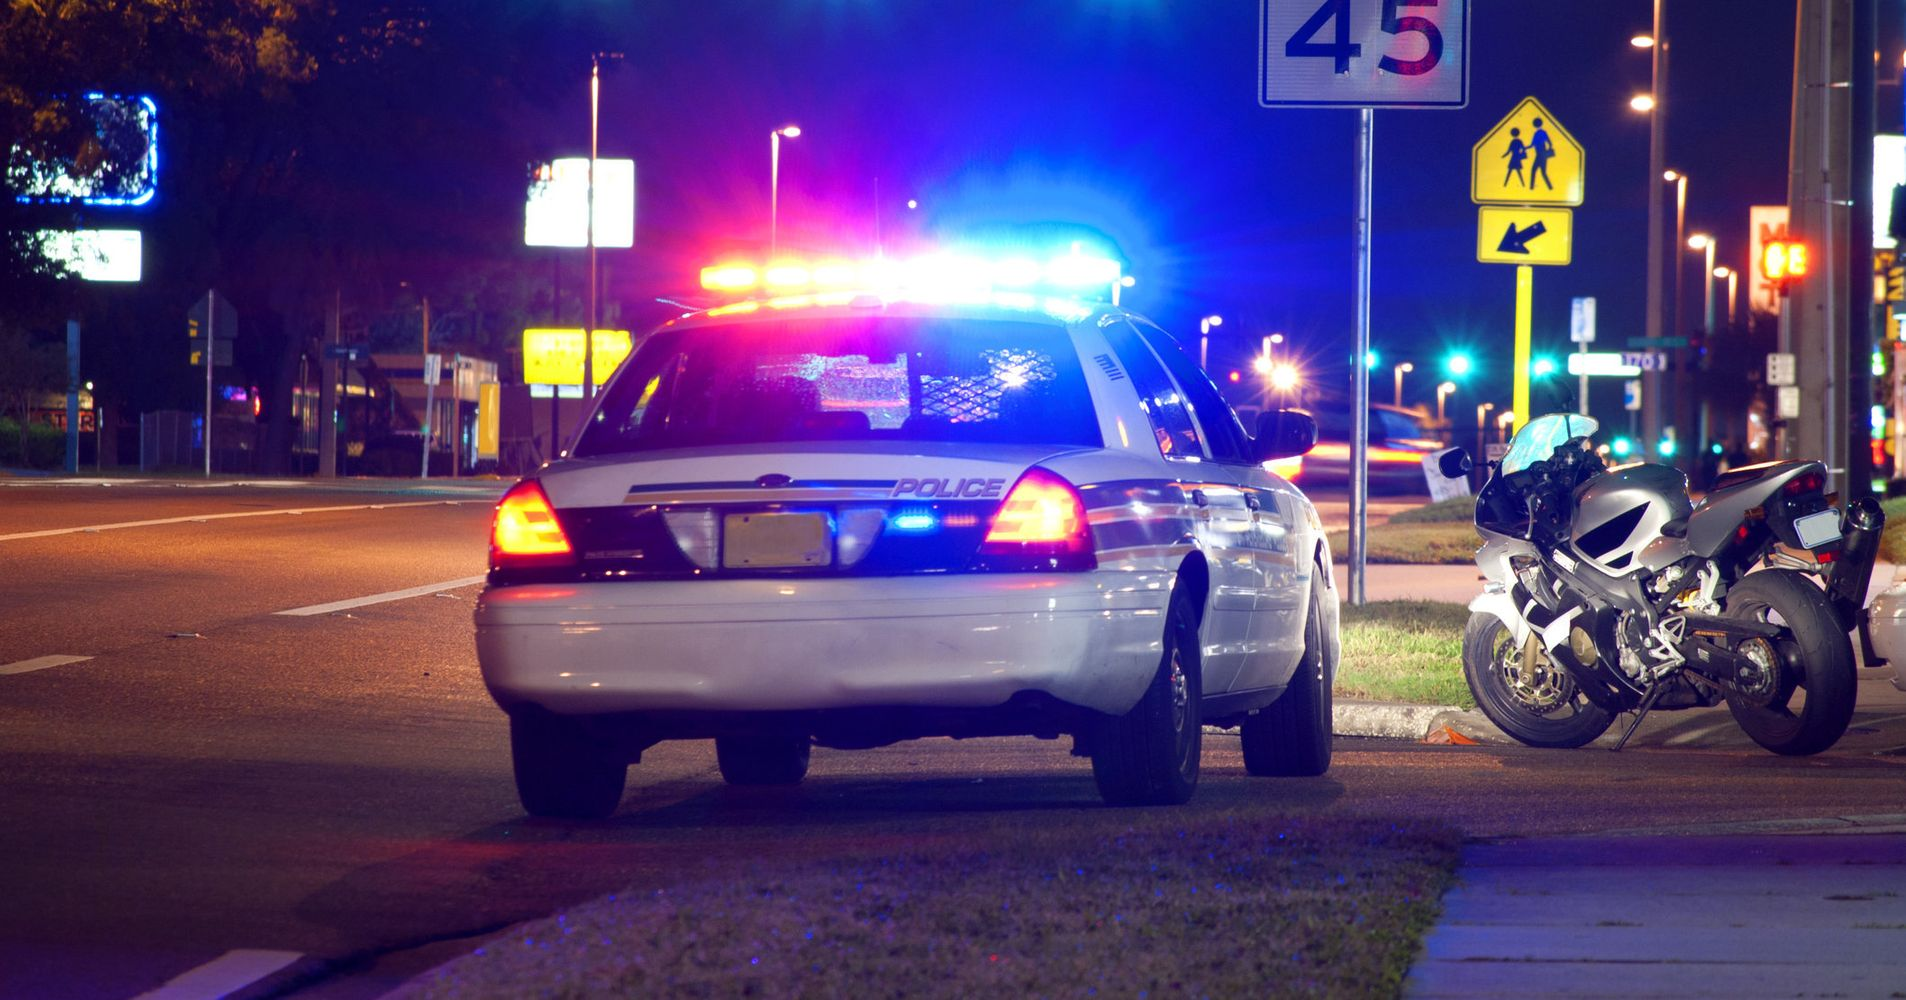 Man Holding Stick Shot Dead By Oklahoma City Cop